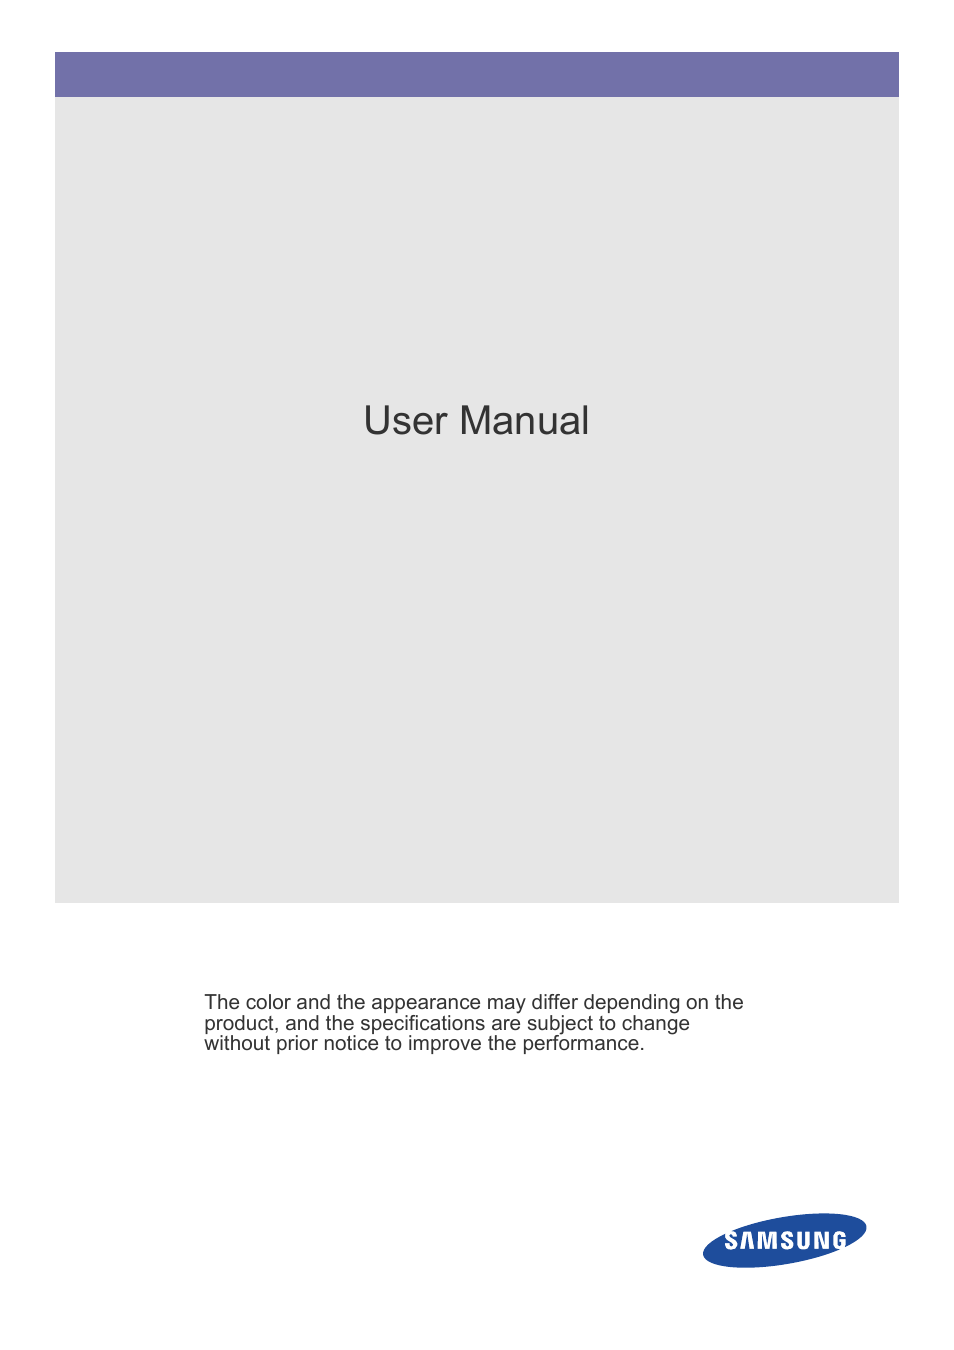 samsung ls23ptnsf za user manual 76 pages also for ls24ptnsf za rh manualsdir com samsung curved monitor 27 user manual samsung user manual monitor driver